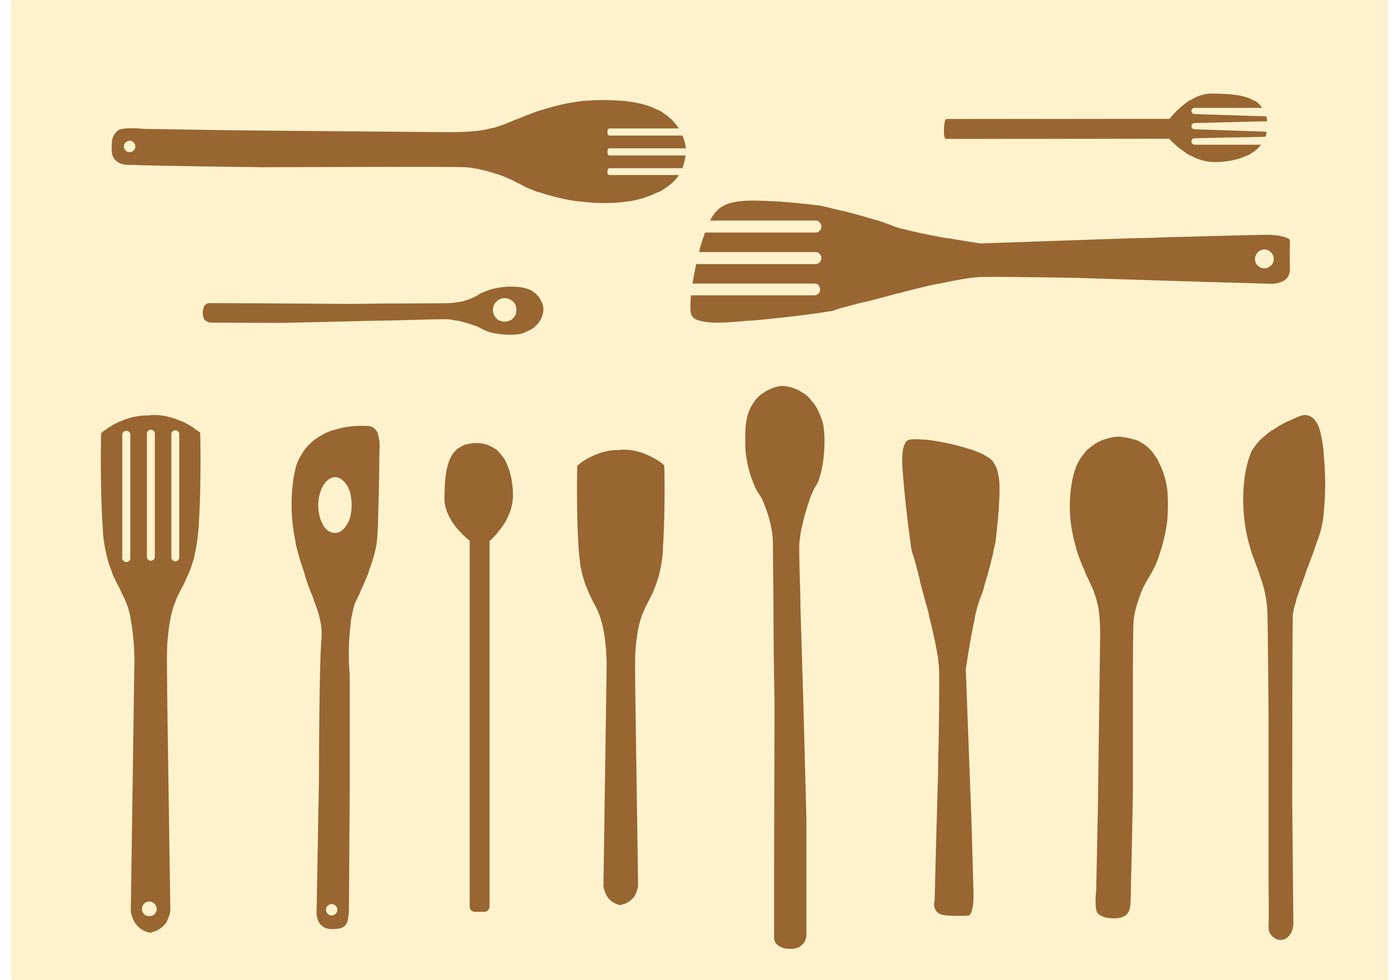 Simple Wooden Spoon Vectors - Download Free Vector Art, Stock Graphics ...